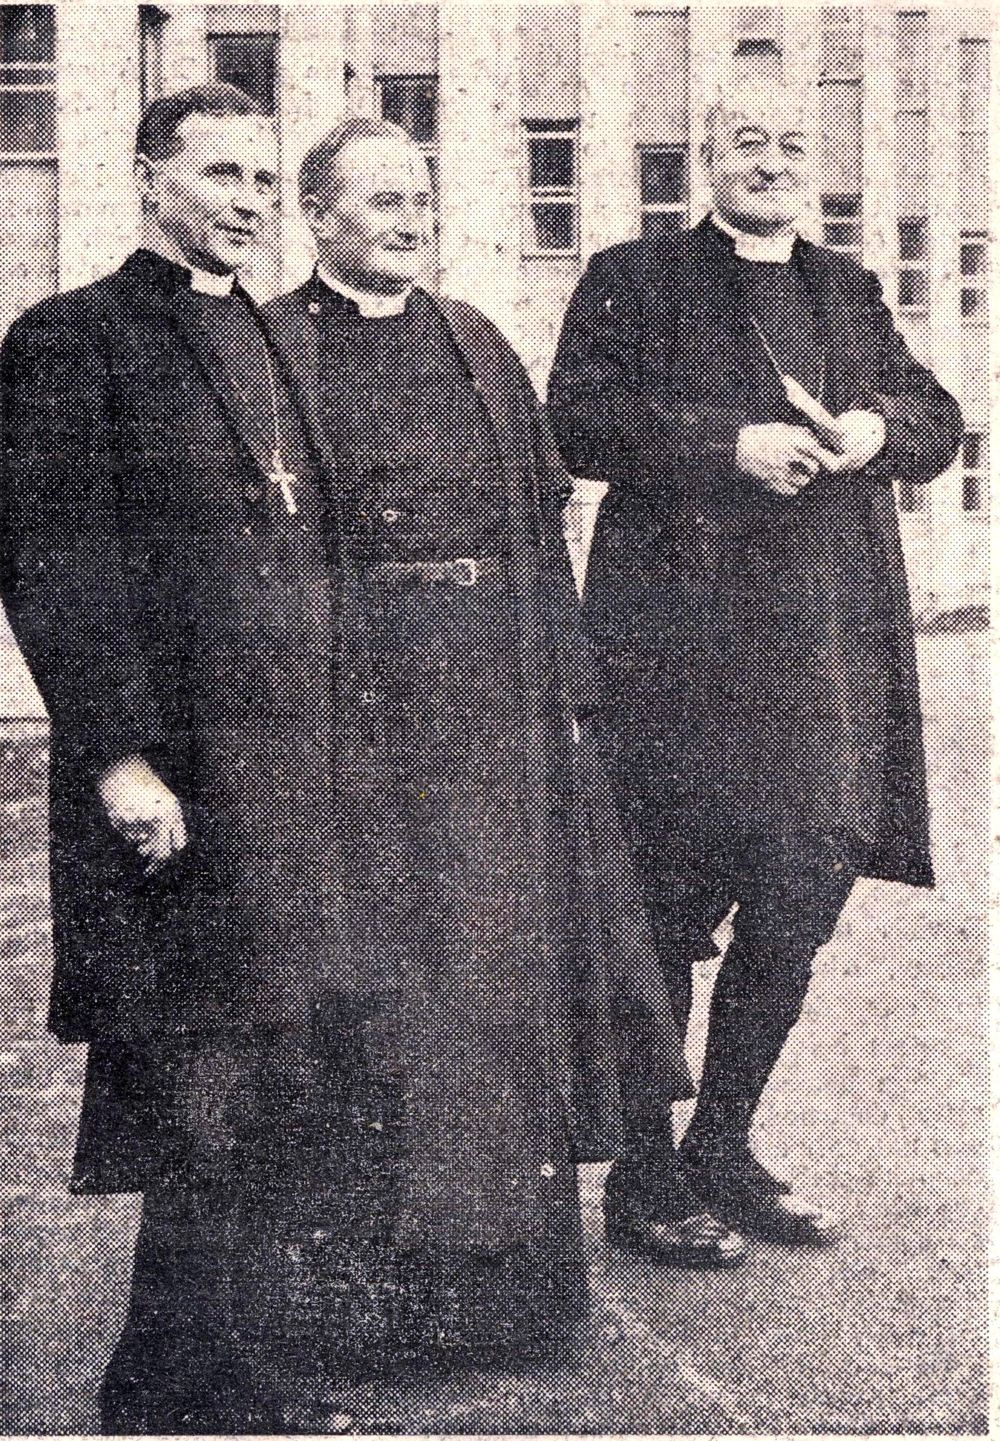 Most Revd G.O. Simms, Archbishop of Dublin, Revd John Brown, Warden of the Hostel, and the Most Revd J. McCann, Archbishop of Armagh at the opening, Church of Ireland Gazette, 21 February 1964